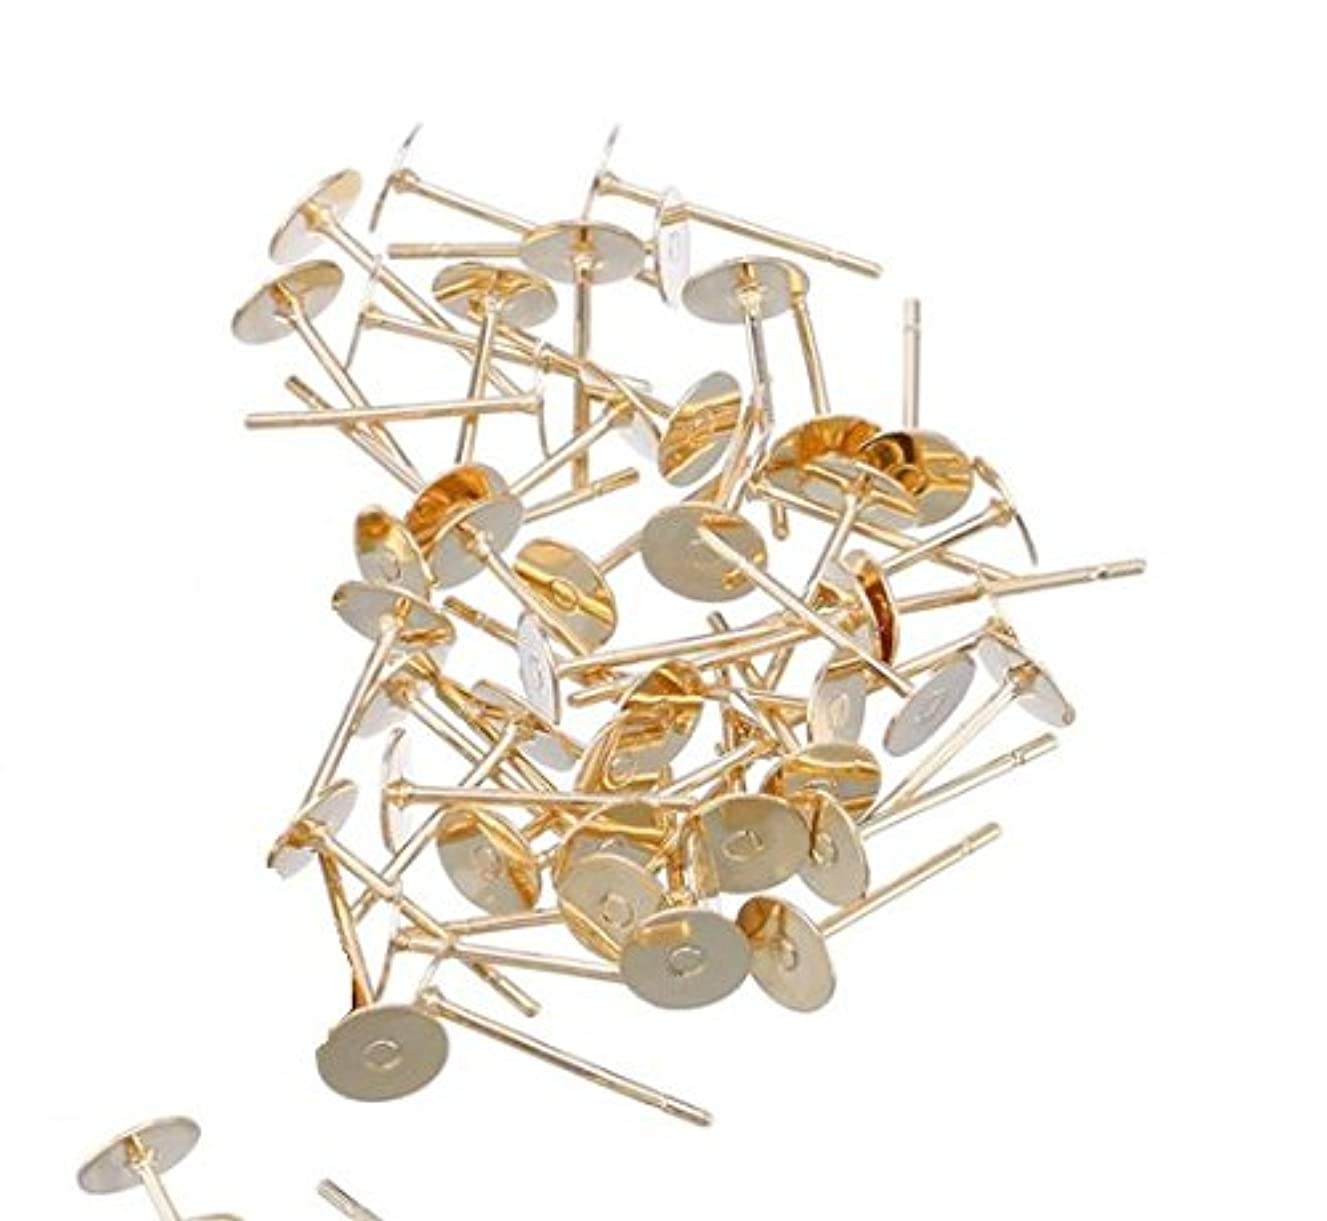 VNDEFUL 200 Pieces 6mm Stainless Steel Flat Round Blank Peg,for DIY Earring Making Findings (Gold)